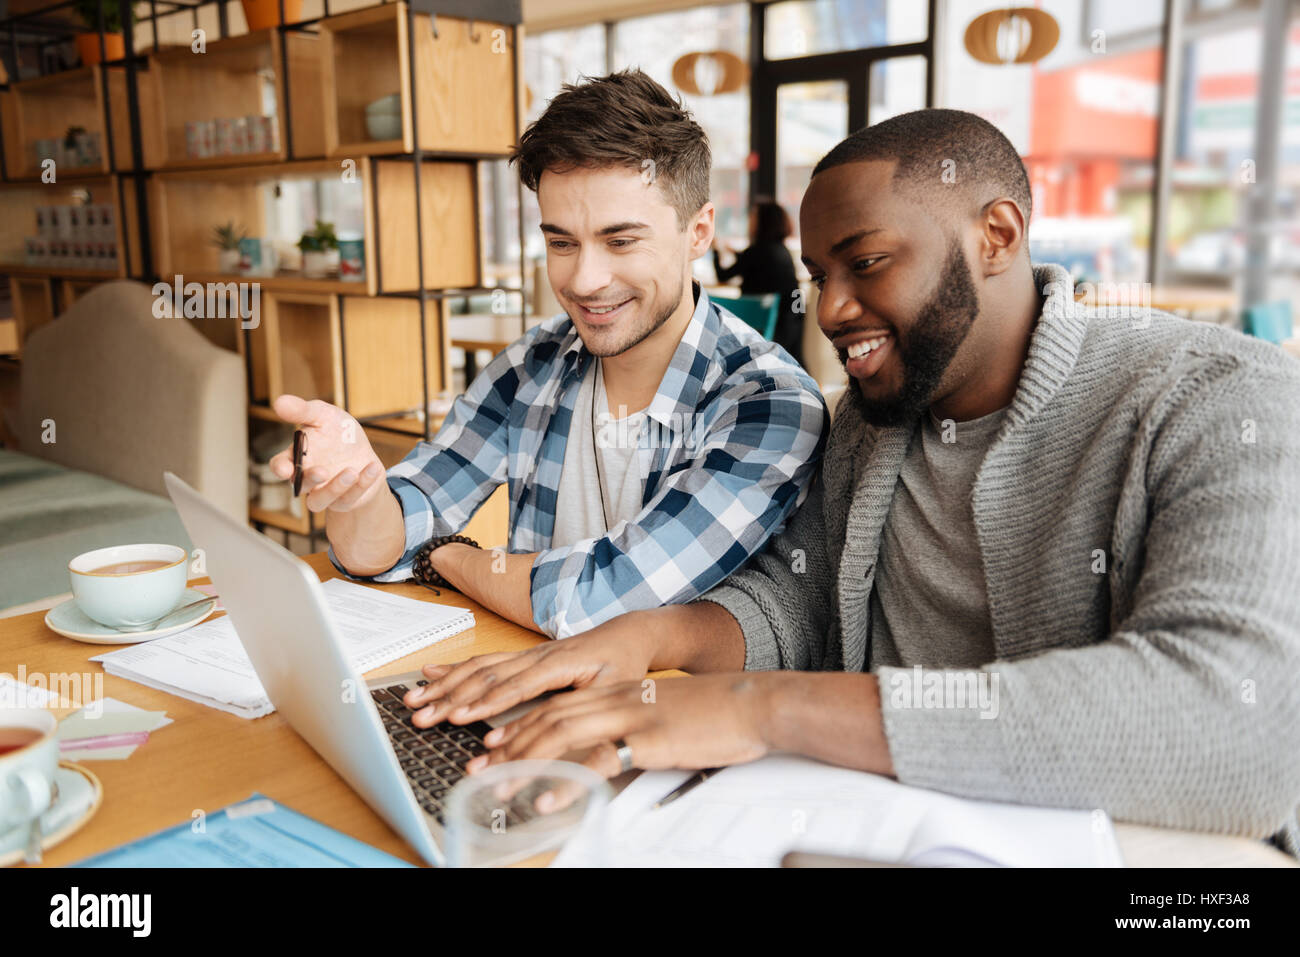 Cherfful students using laptop - Stock Image